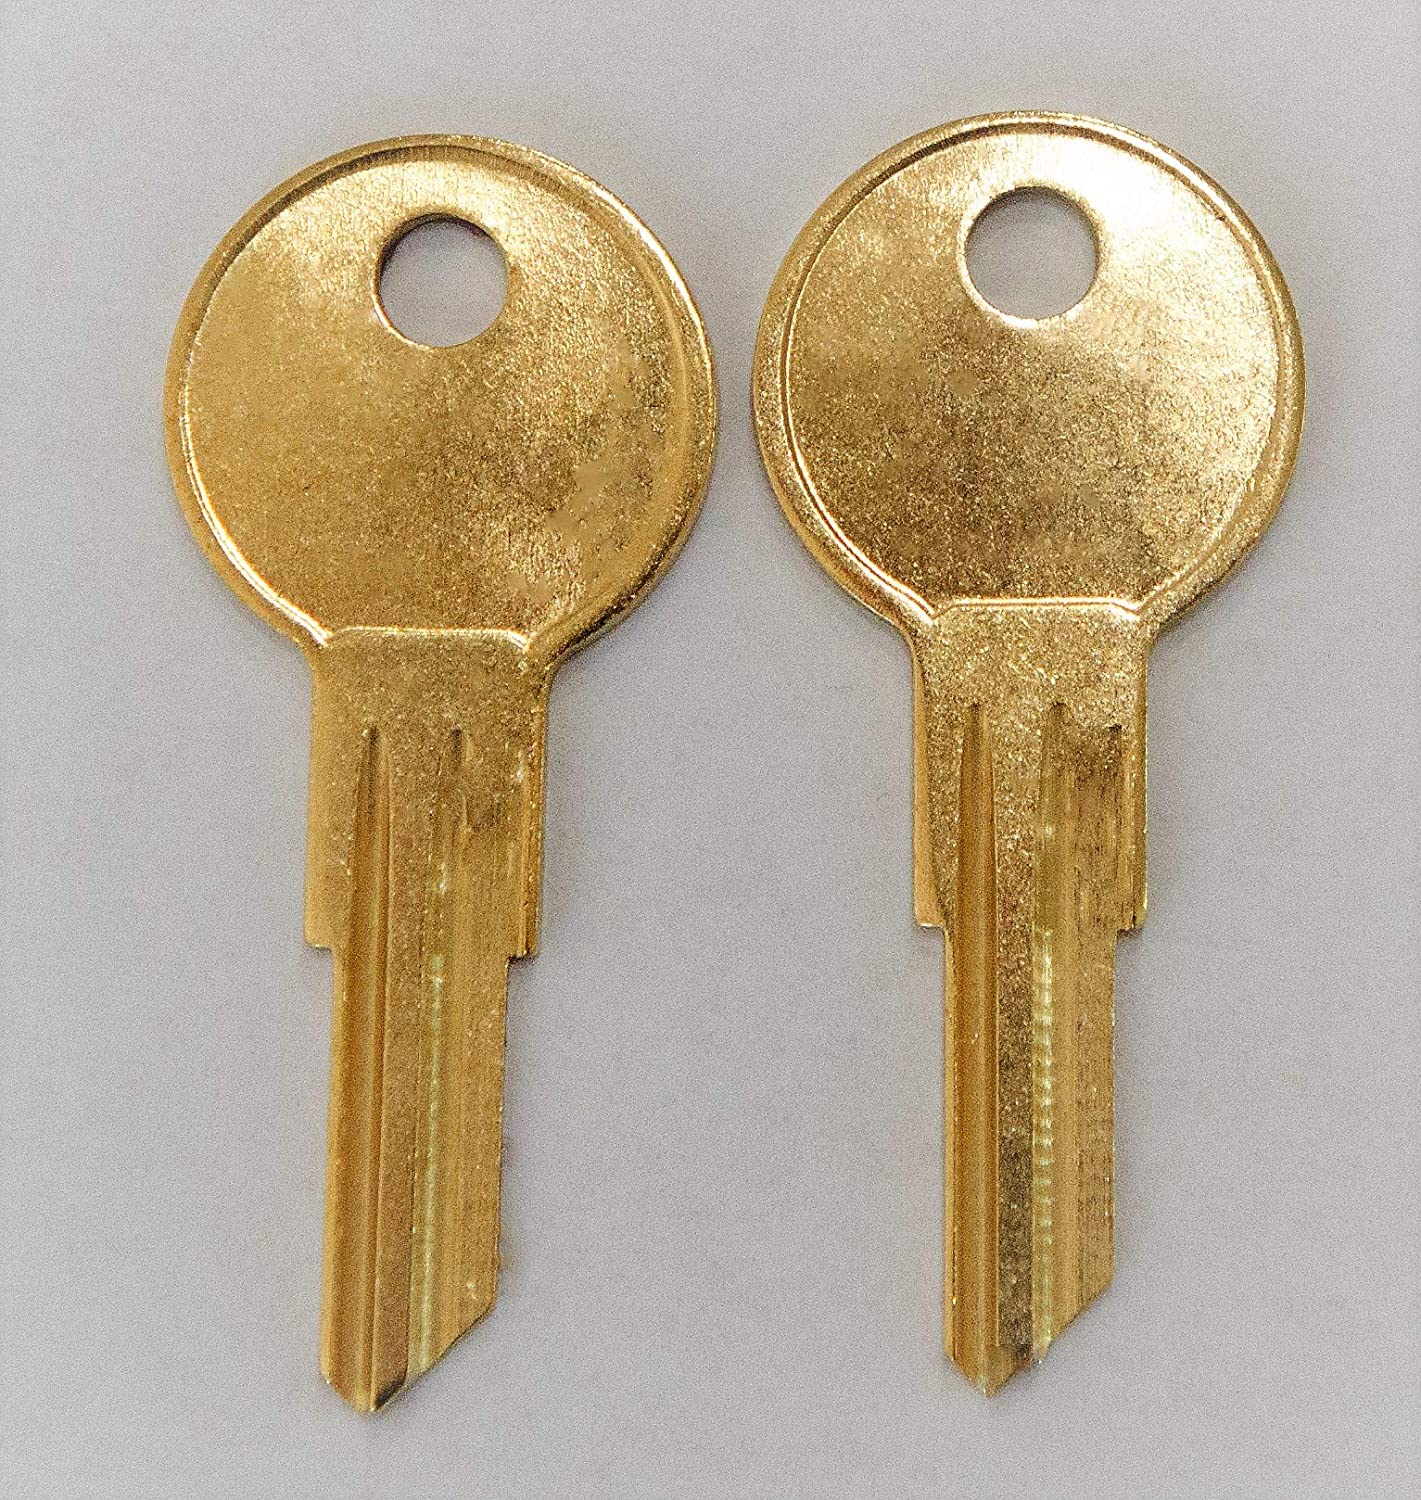 Two Replacement Keys for Herman Miller File Cabinet Office Furniture Cut to Lock/Key Numbers from UM351 to UM427 pre Cut to Code by keys22 (UM410)